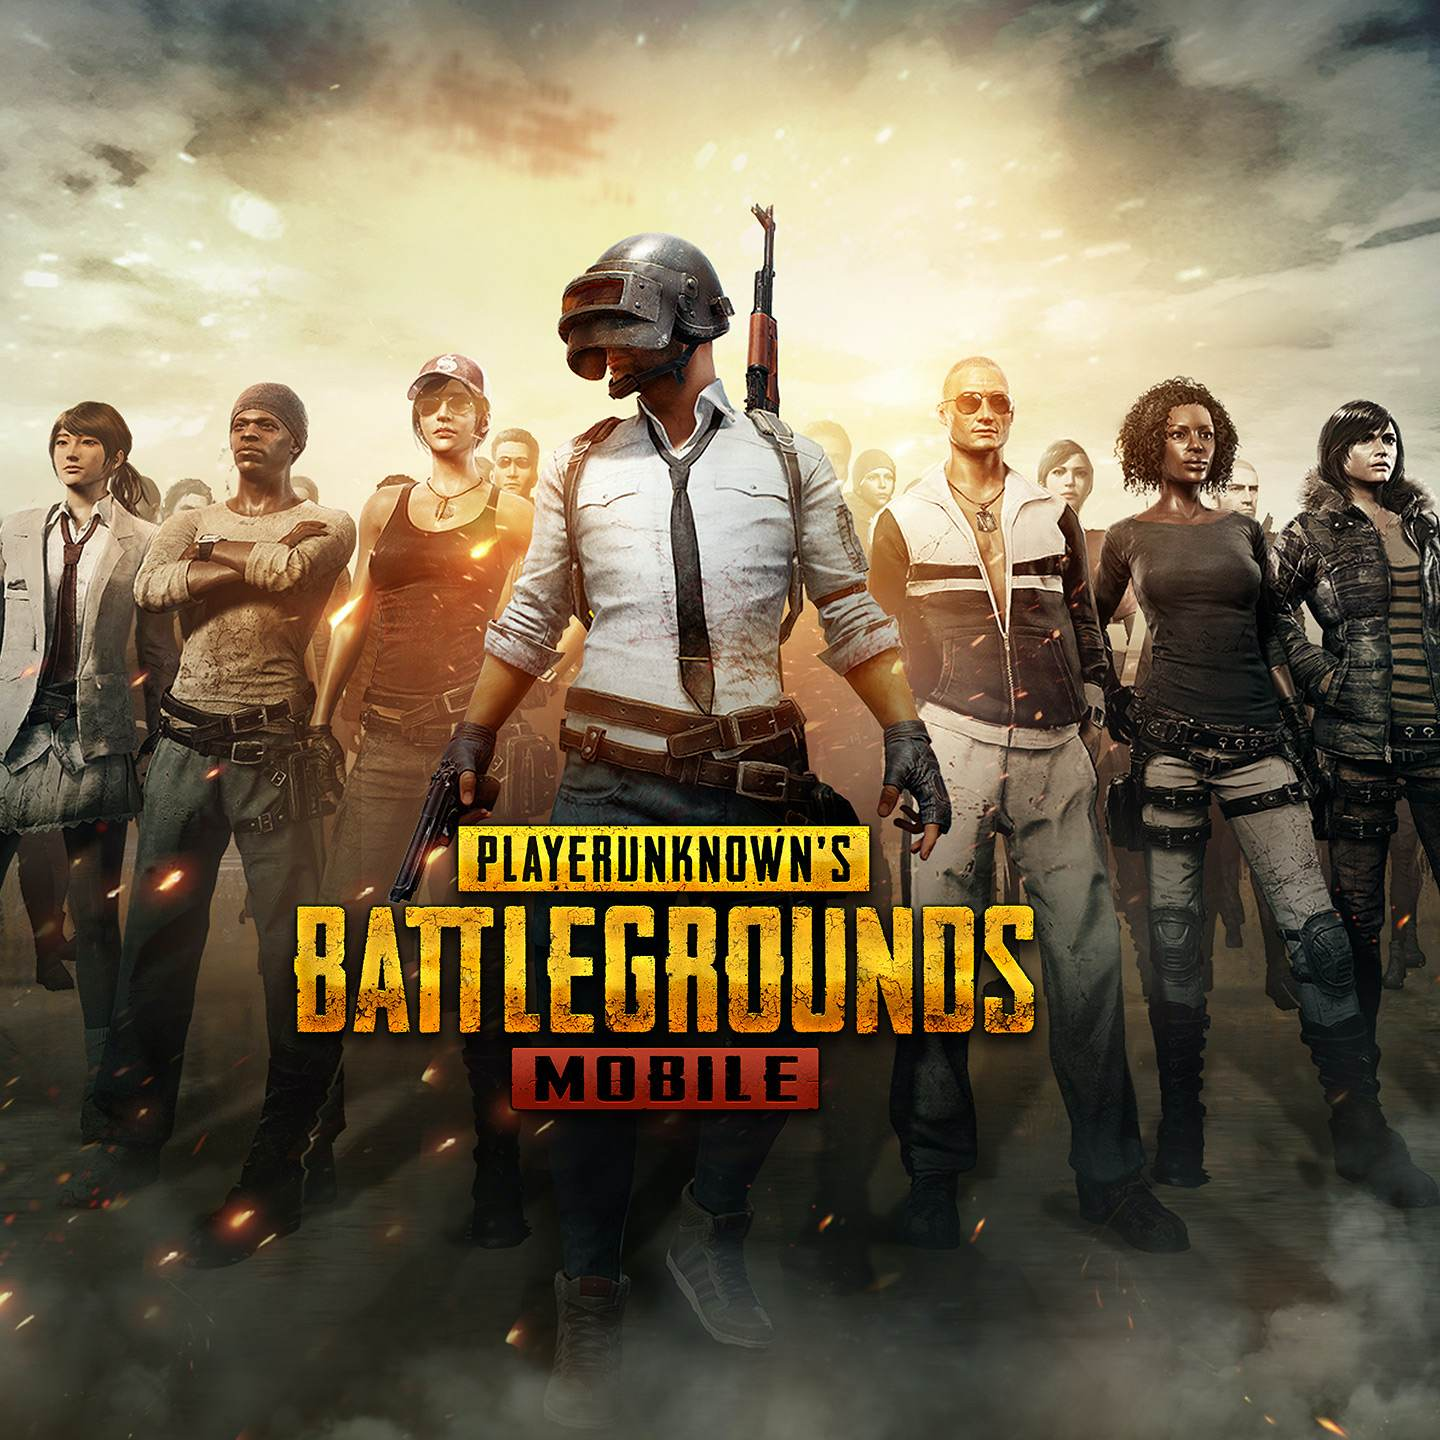 PUBG Mobile Reaches the Second Largest Revenue in the World